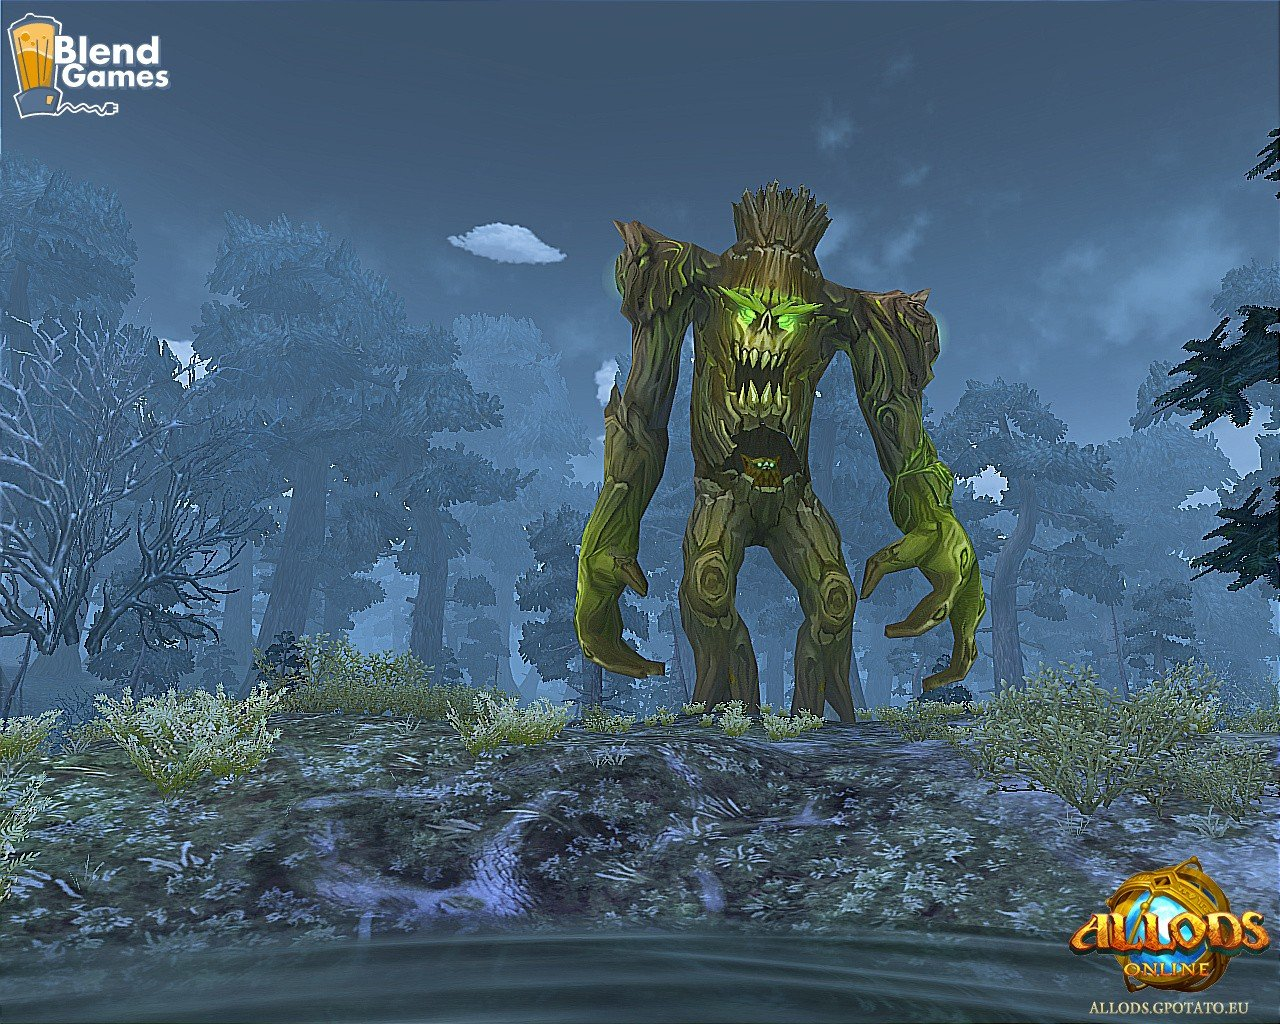 Allods Online Final Closed-Beta Screenshots #11489